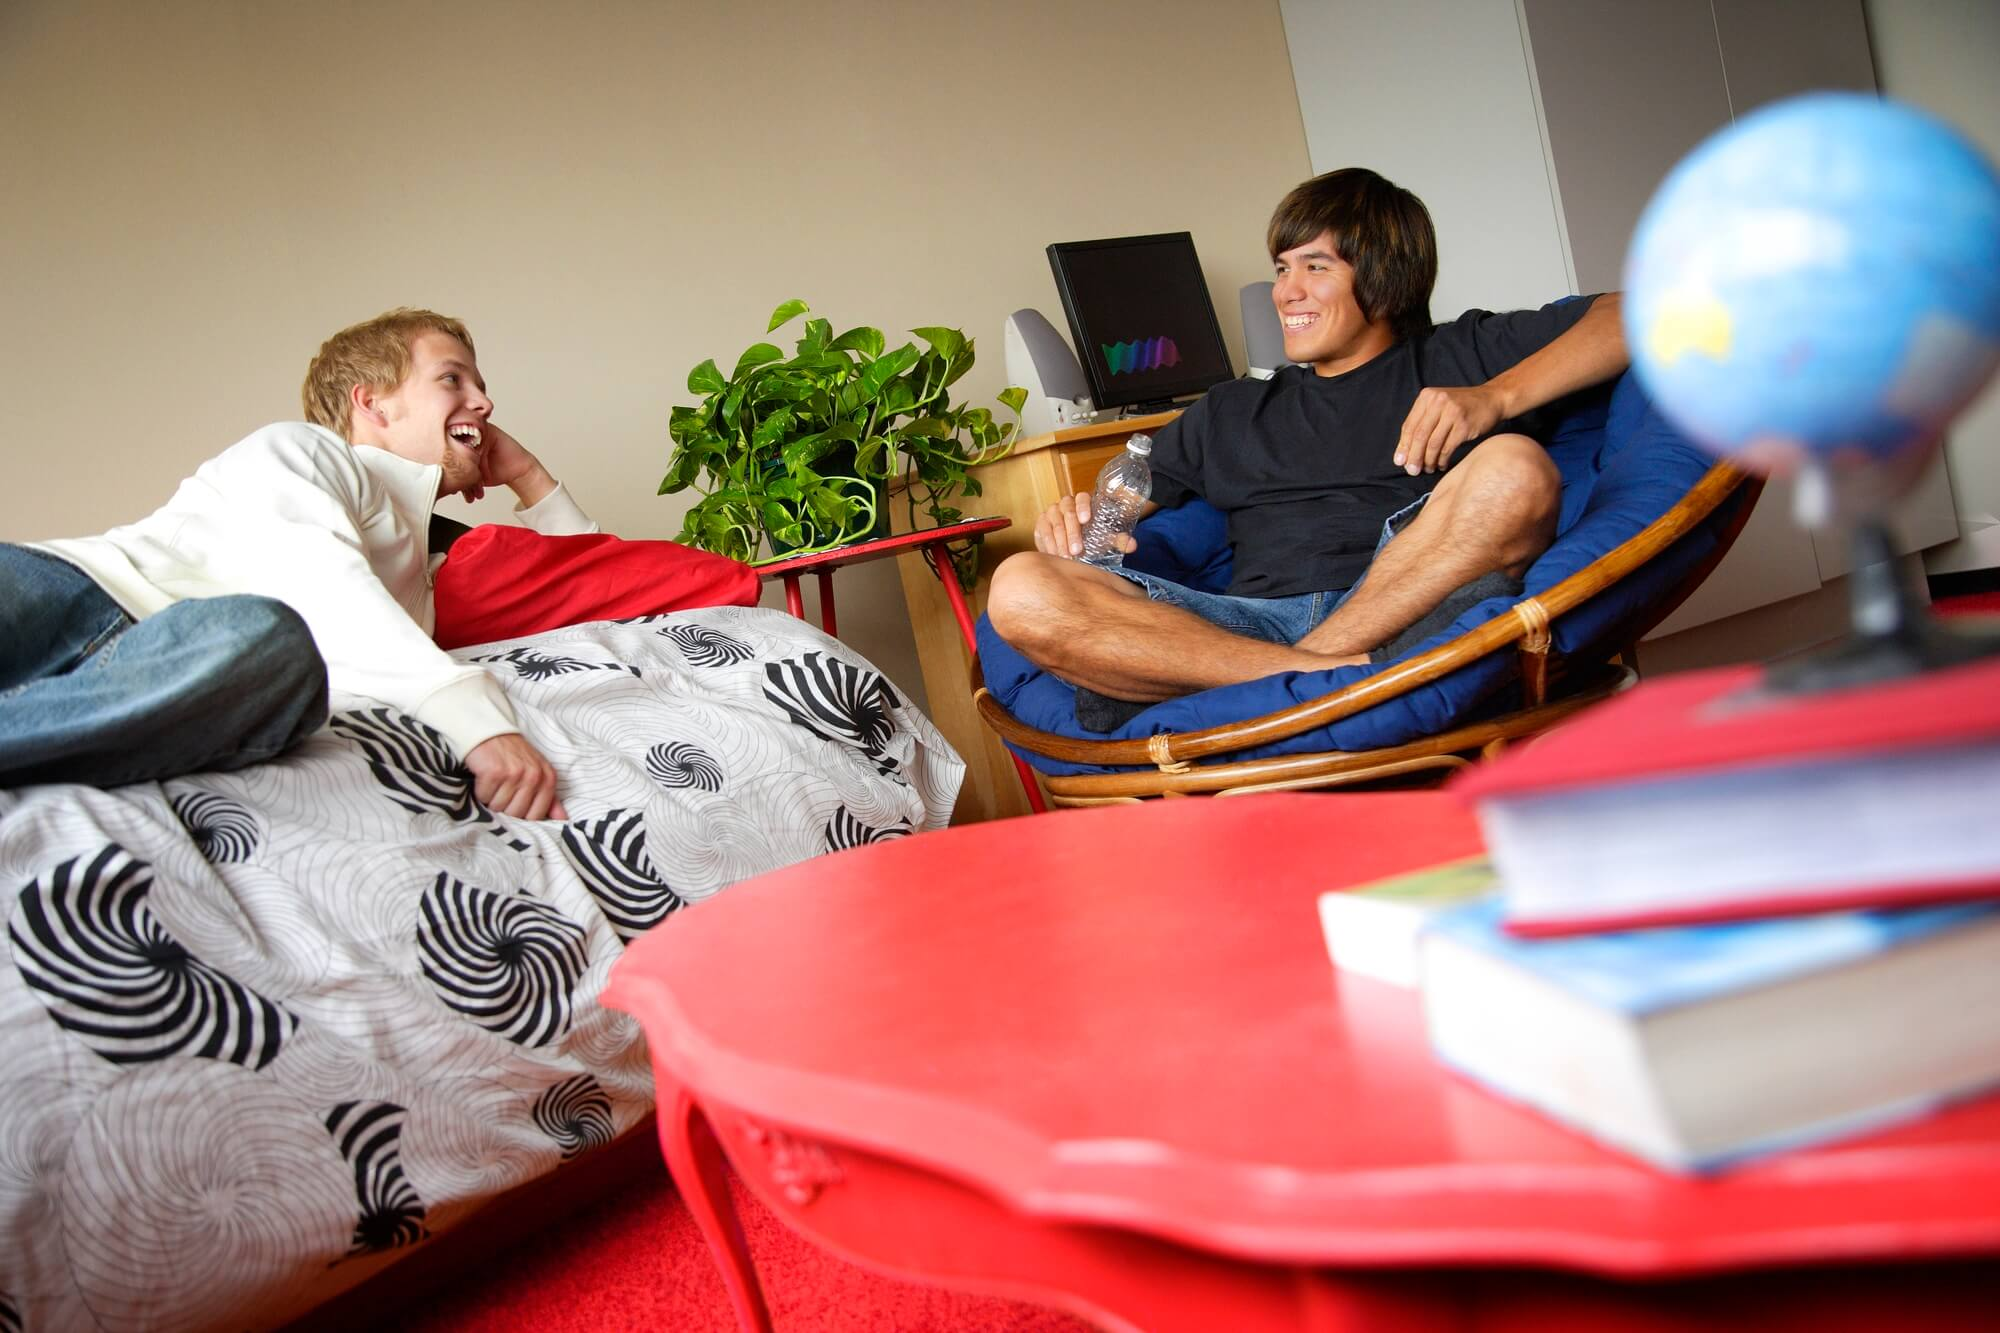 There are pros and cons to renting to college students. Here's how to minimize your risks.